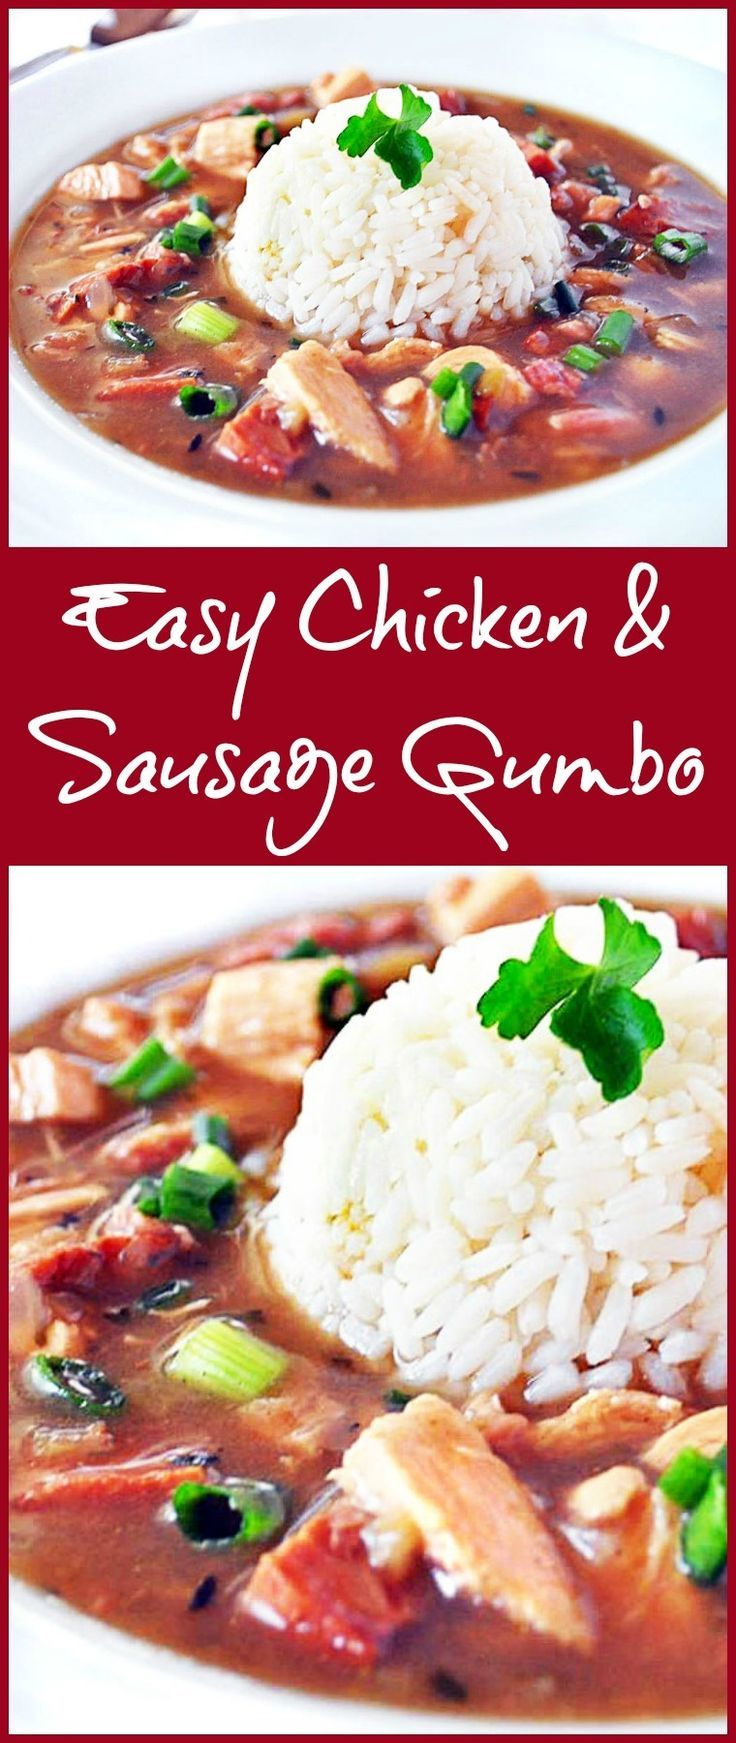 recipe: paul prudhomme chicken and sausage gumbo [34]